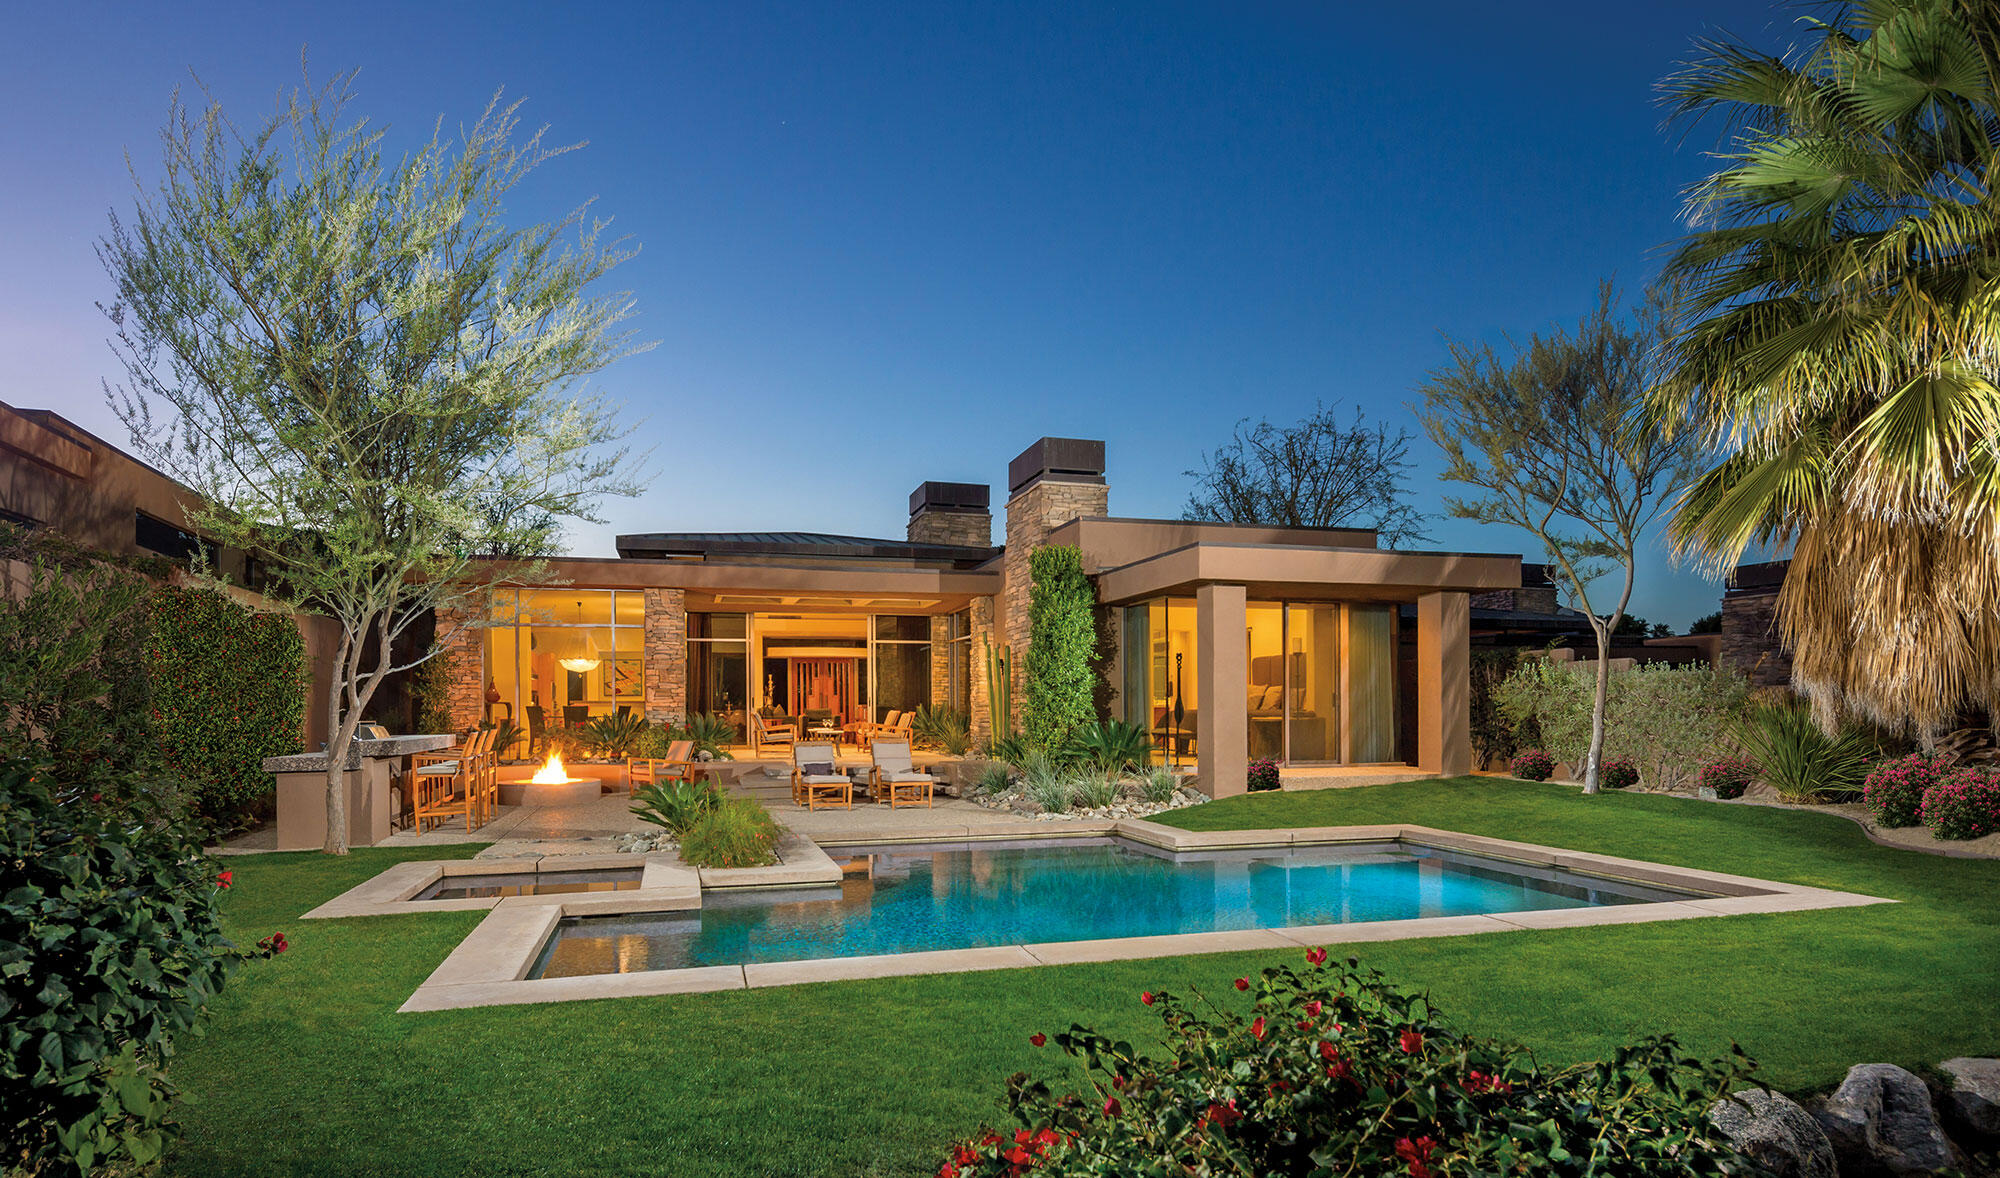 An idyllic setting with running stream, mountains and a private putting green in view from all of the living areas. This desert contemporary home offers seamless indoor-outdoor living. A spacious great room floor plan for casual living and entertaining which opens to the kitchen with an expansive morning bar, center island and high-end appliances. Spacious master suite with fireplace and glass sliders that open to the pool and spa. Two interior guest suites with full baths and glass sliders to entry courtyard. Also a private entry guest house with media center, morning bar, bath and walk-in closet. The covered outdoor living room with lounge seating is an extension of the indoor great room and is open to the patio with barbecue, dining bar, firepit, pool and spa.